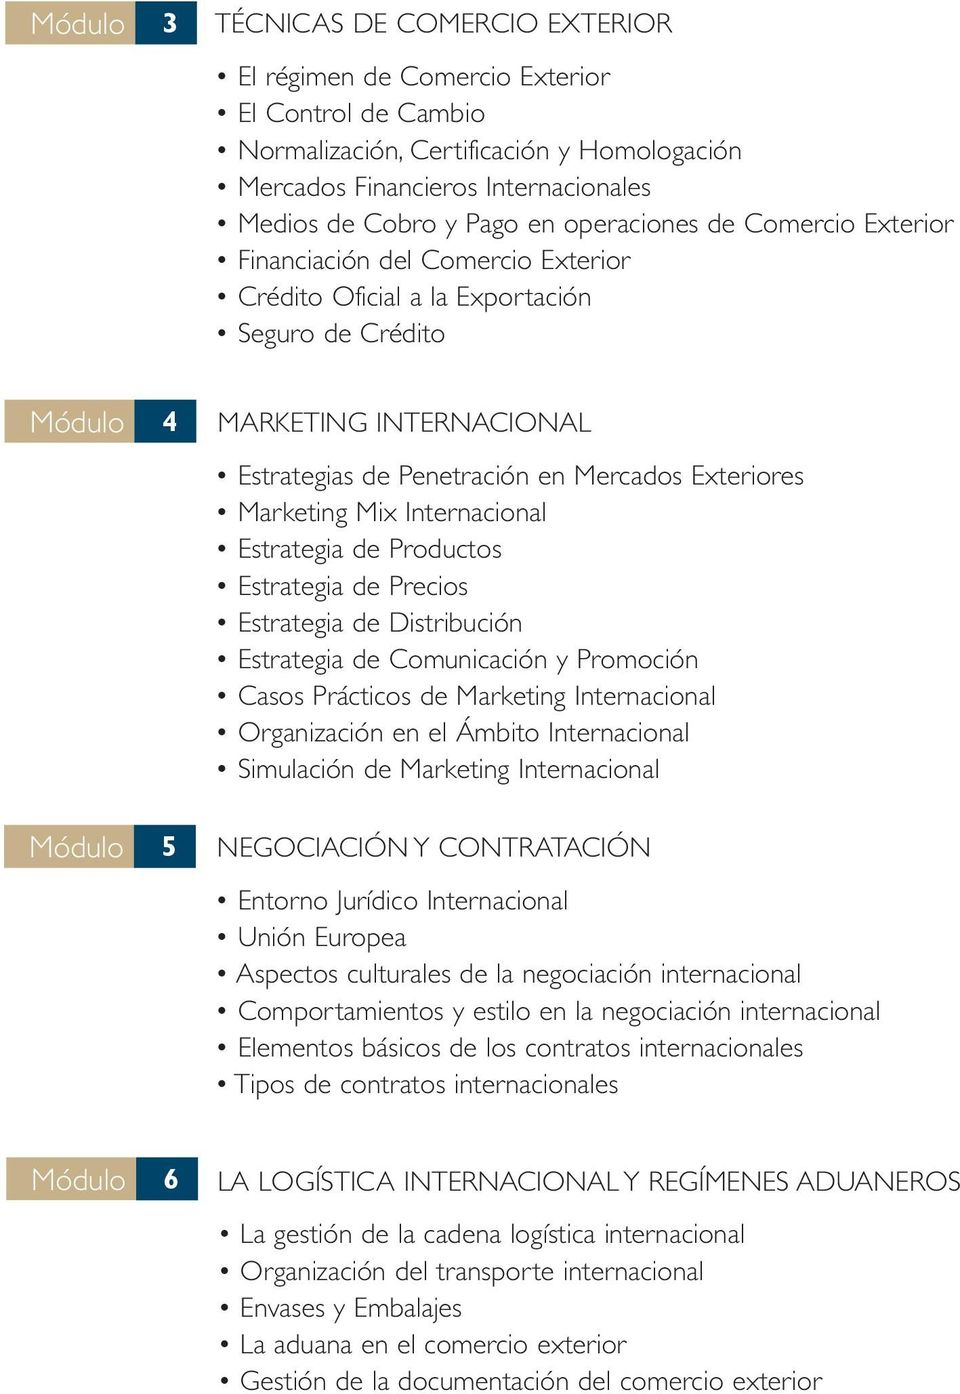 Exteriores Marketing Mix Internacional Estrategia de Productos Estrategia de Precios Estrategia de Distribución Estrategia de Comunicación y Promoción Casos Prácticos de Marketing Internacional